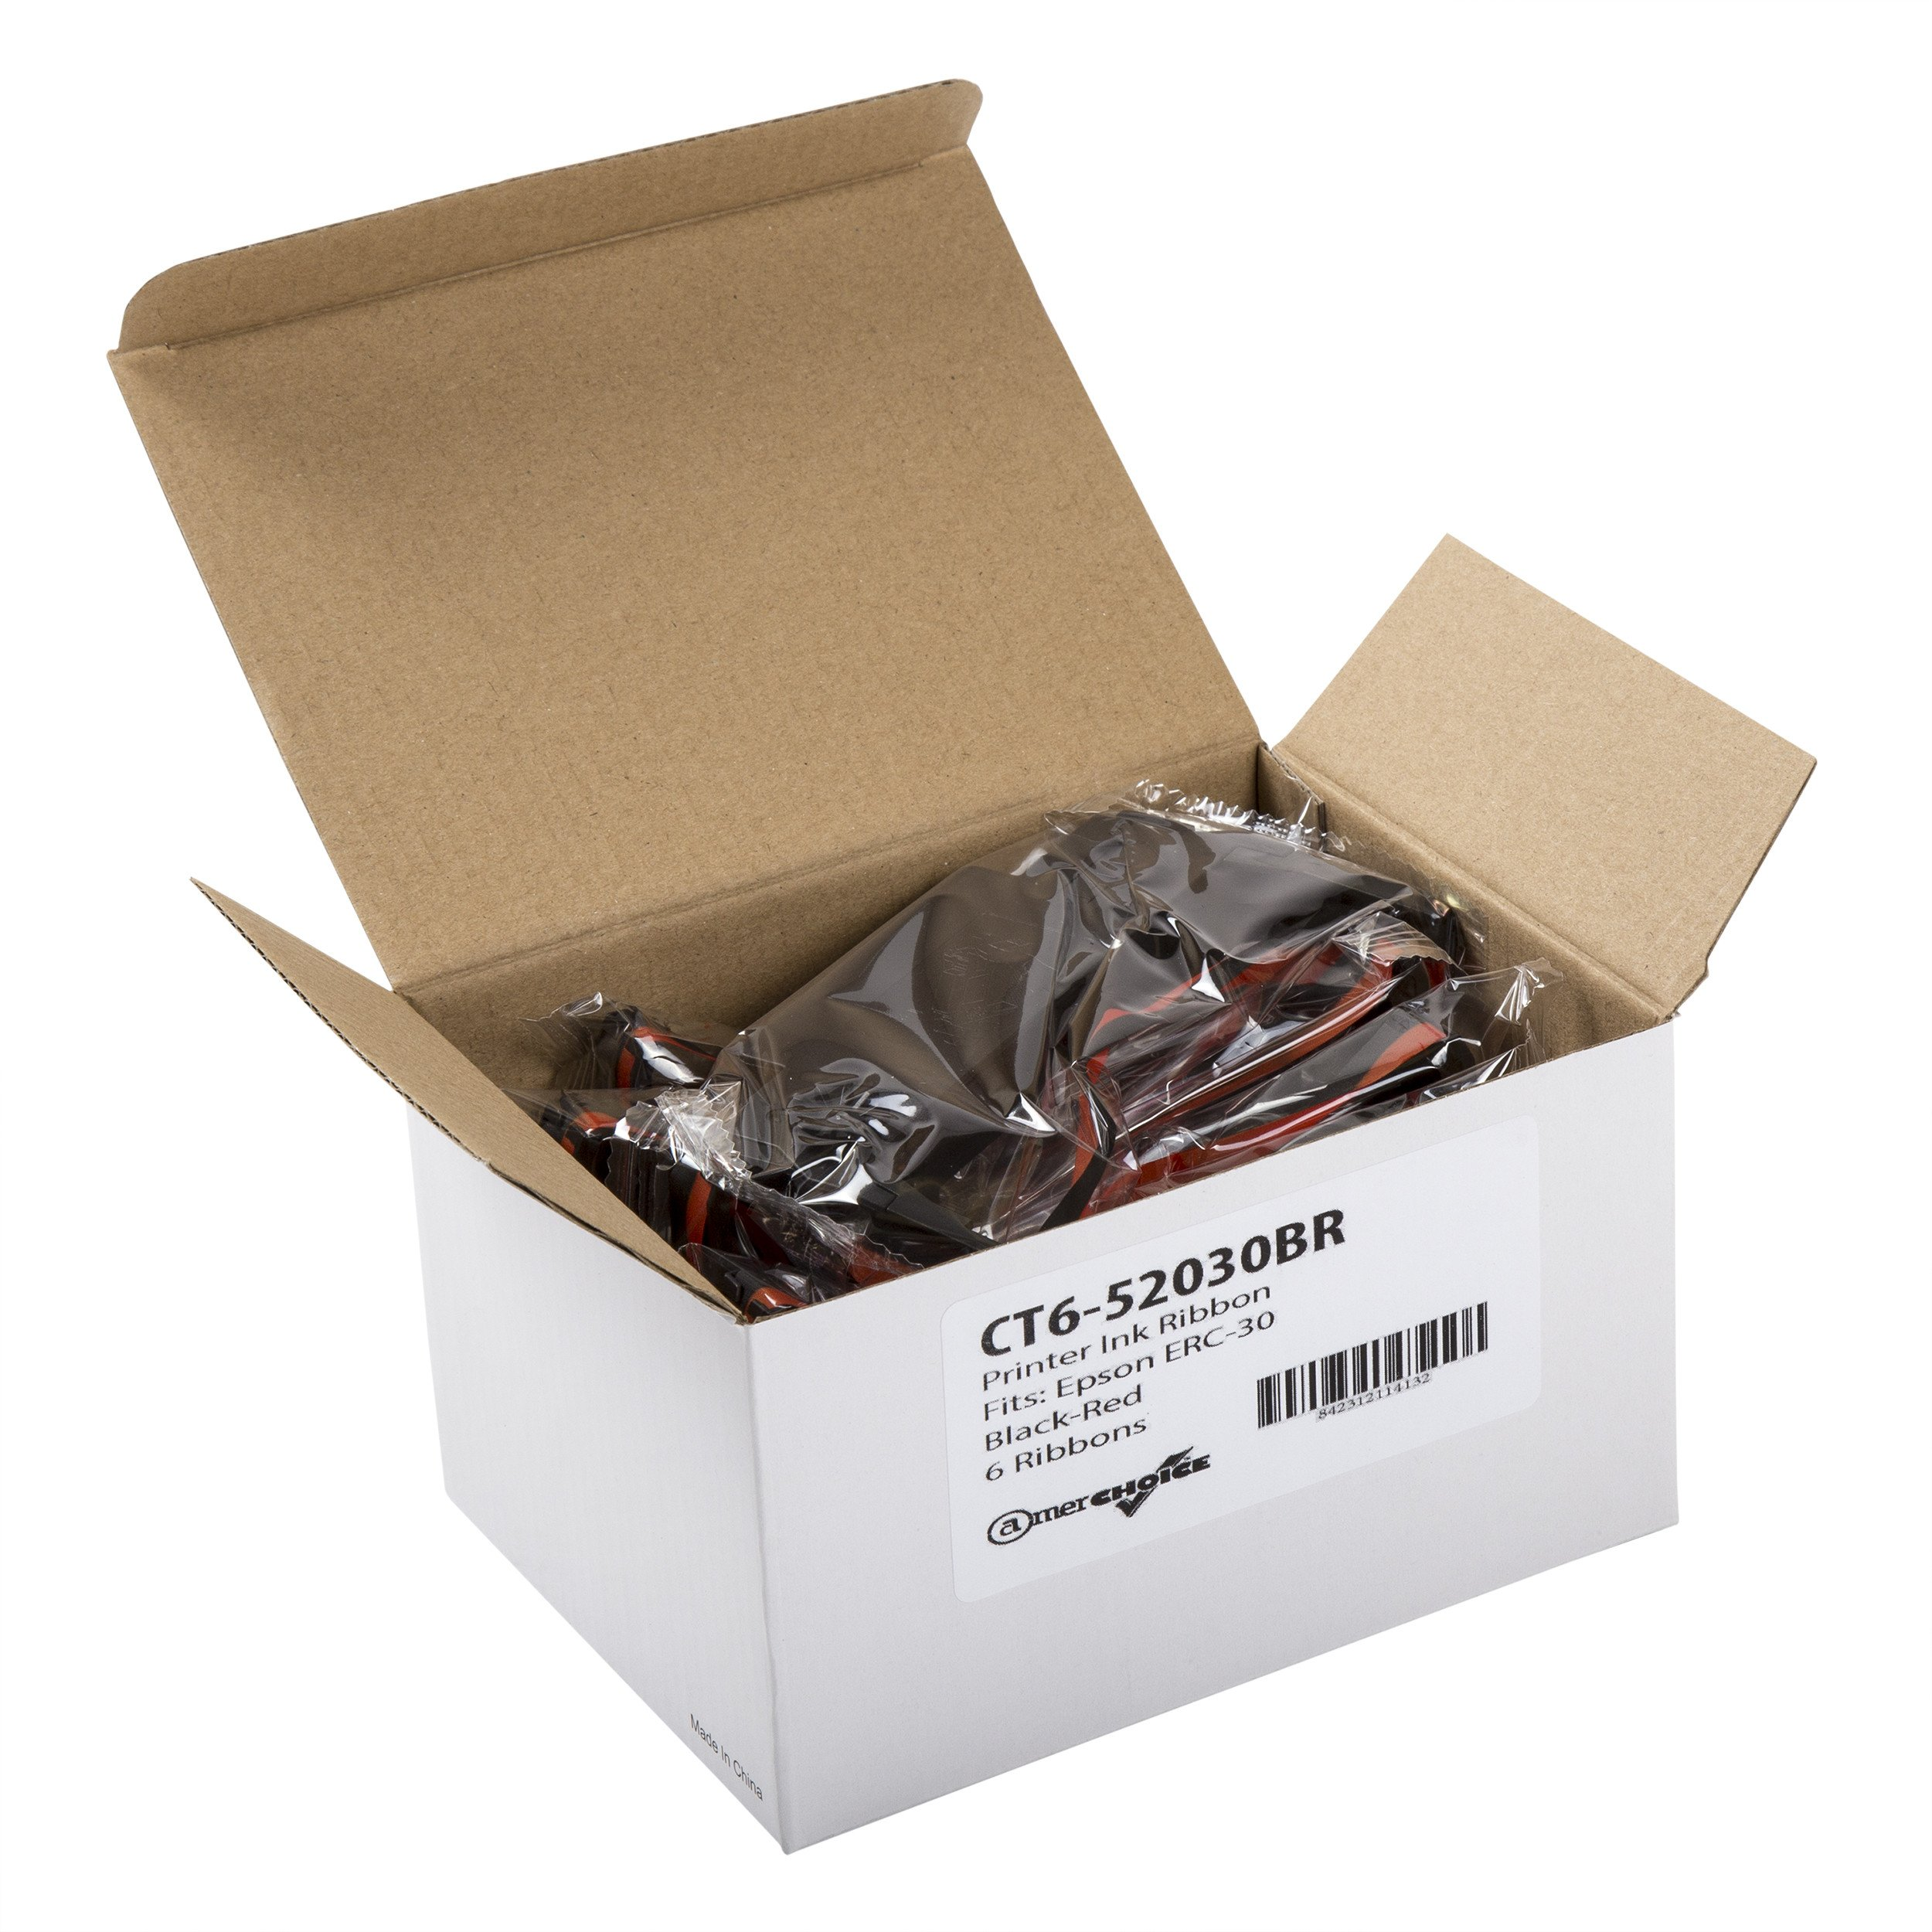 CT652030BR POS printer ribbon, Epson ERC-30/34/38, Black-Red, 6 Per Box